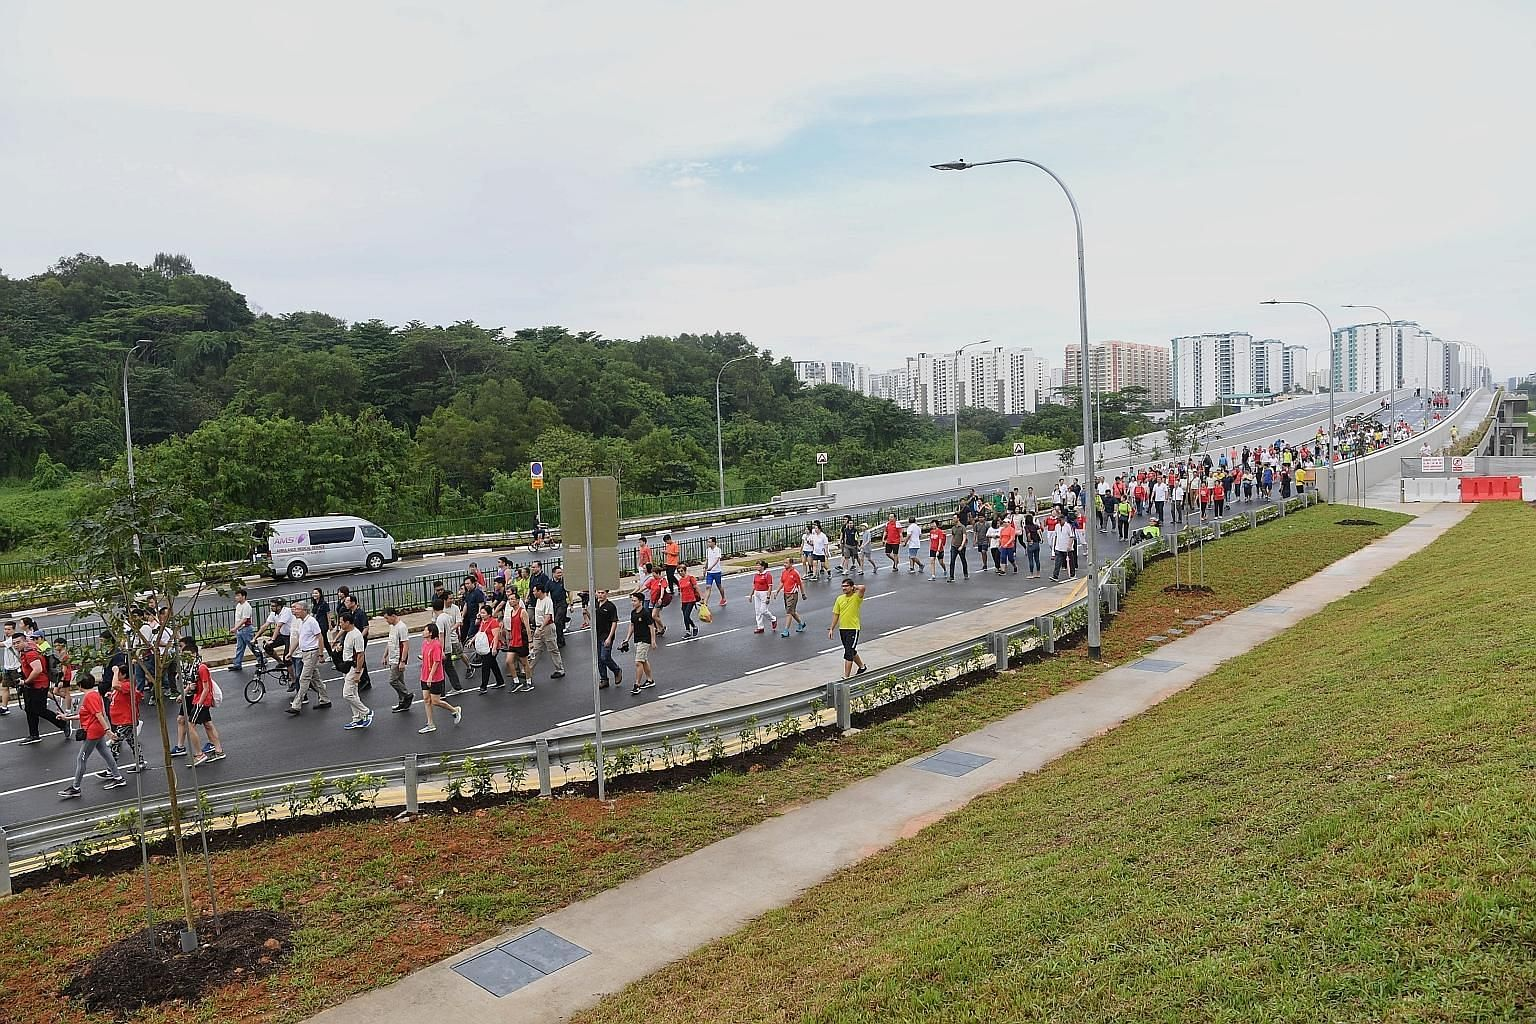 More than 400 Punggol residents turned up for the opening of a new link road connecting Punggol Central to Kallang-Paya Lebar Expressway and Tampines Expressway yesterday. They took part in a brisk walk along the new road, which is expected to ease c